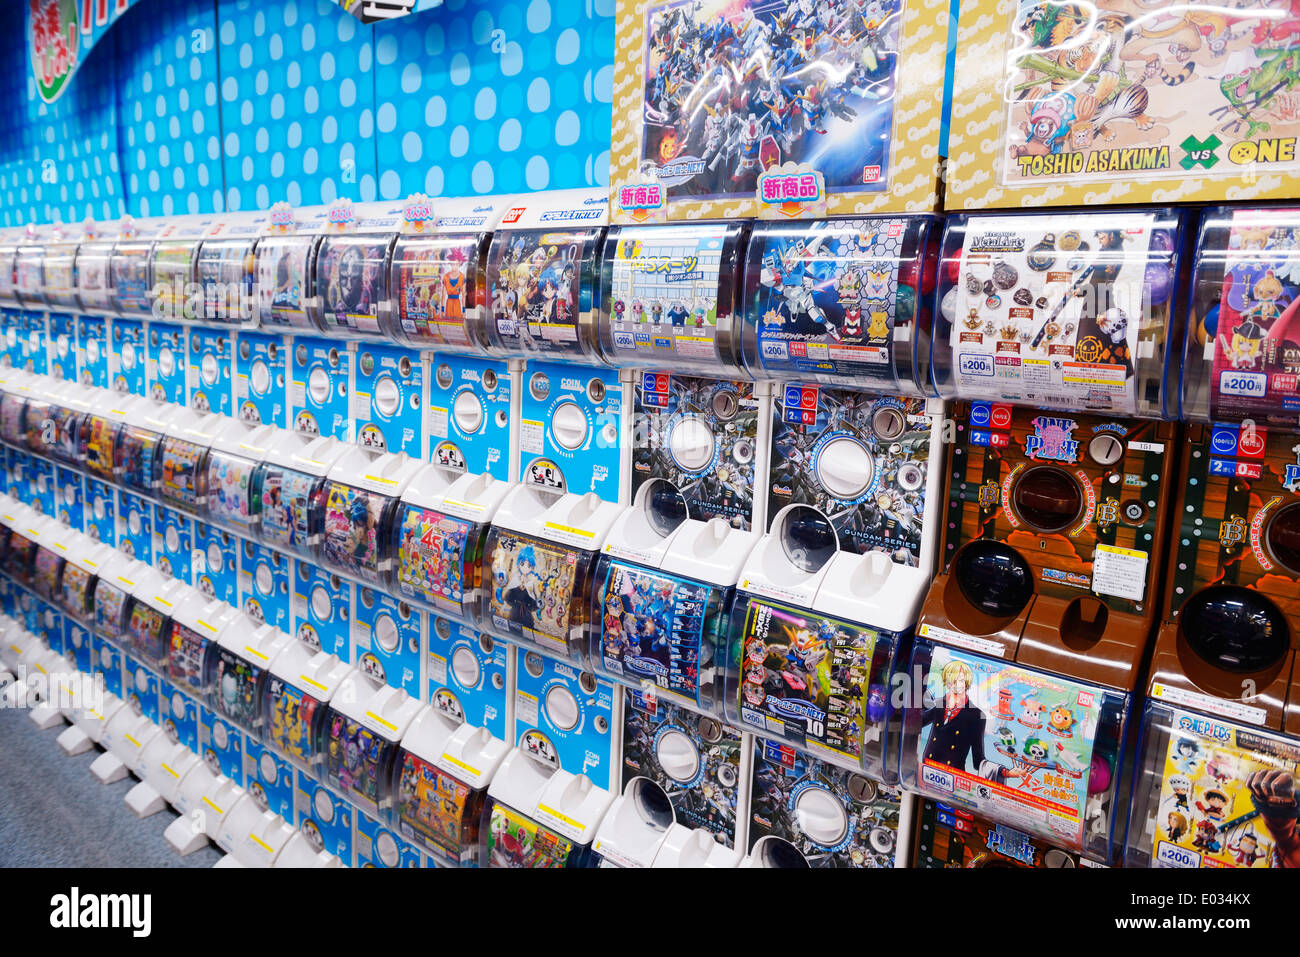 Capsule station, slot machines with action figures anime characters in Tokyo, Japan - Stock Image